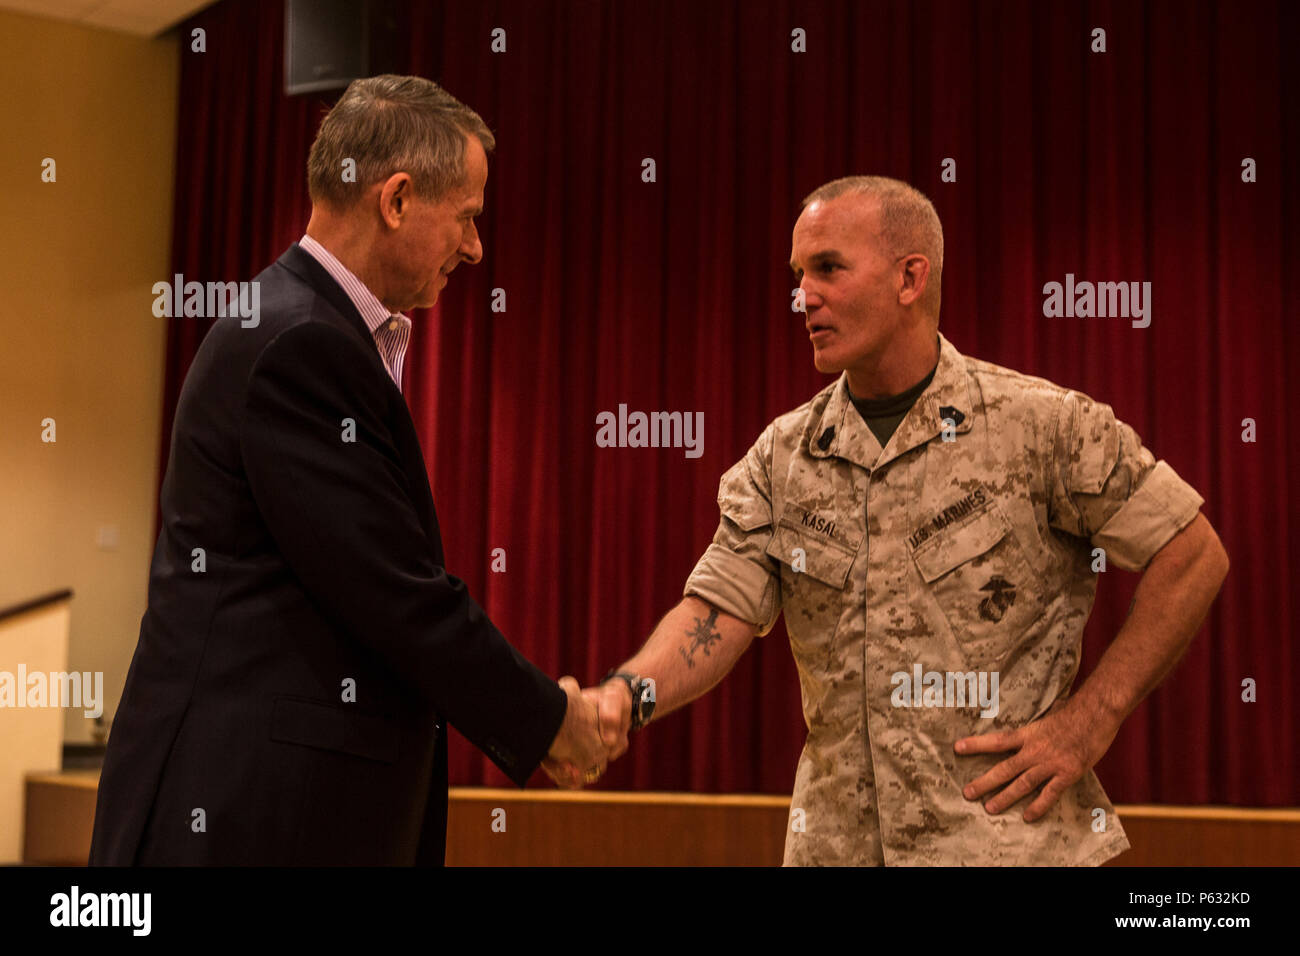 MARINE CORPS BASE CAMP PENDLETON, Calif. – Sgt. Maj. Bradley Kasal, right, sergeant major, I Marine Expeditionary Force, thanks retired Gen. Peter Pace, former Chairman of the Joint Chiefs of Staff, during an E-9 symposium at Camp Pendleton April 8, 2016. Pace was the guest speaker for the event, and led participants on a guided discussion. During his speech, Pace spoke about the strong relationship between a commander, his senior enlisted advisor, and the responsibilities senior enlisted Marines have to keep their commanders true. (U.S. Marine Corps photo by Sgt. Emmanuel Ramos/Released) - Stock Image